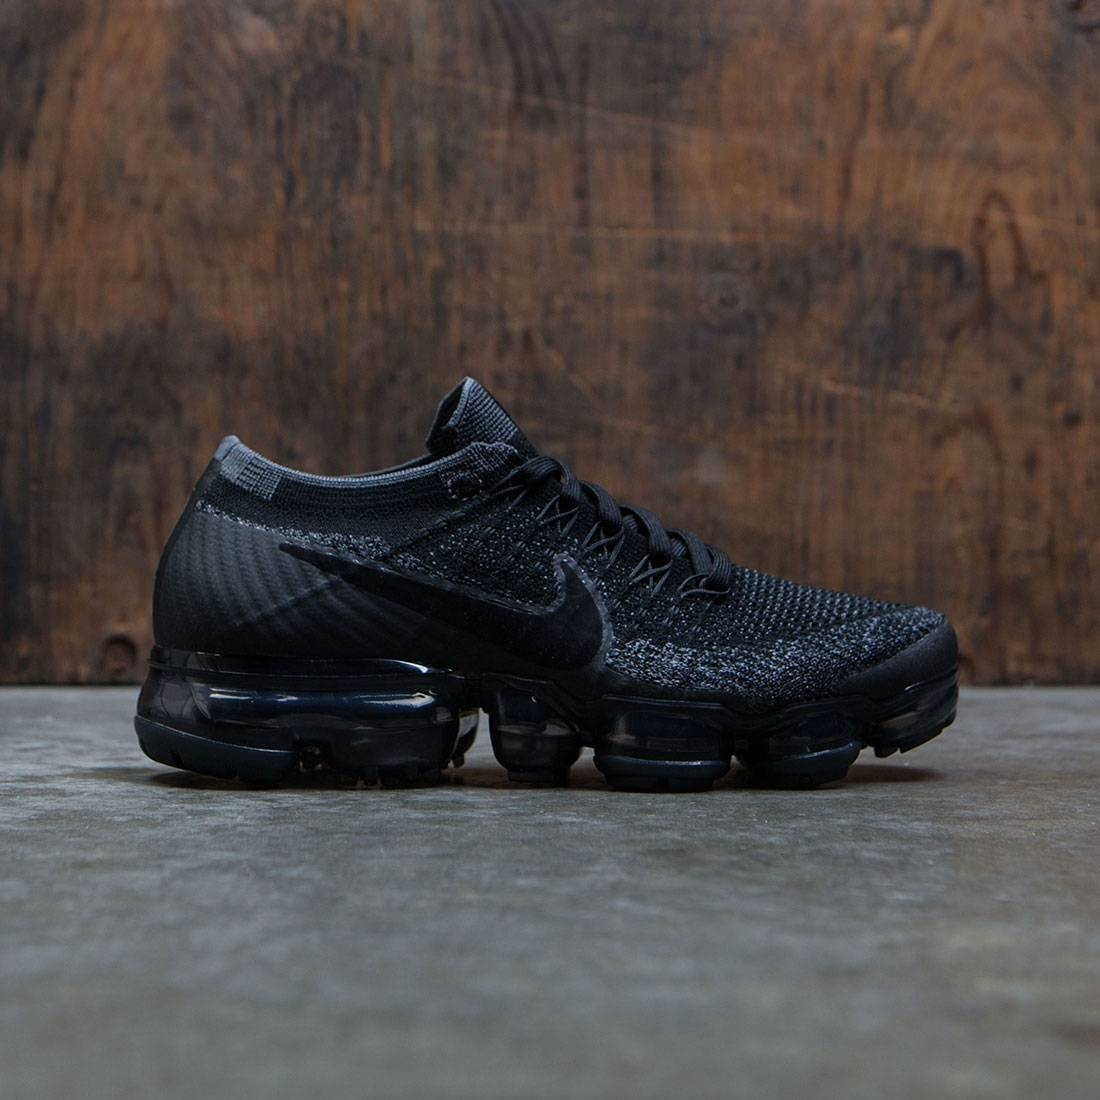 sale retailer f39ac 6a2a0 Nike Women Air Vapormax Flyknit Running (black / anthracite-dark grey)